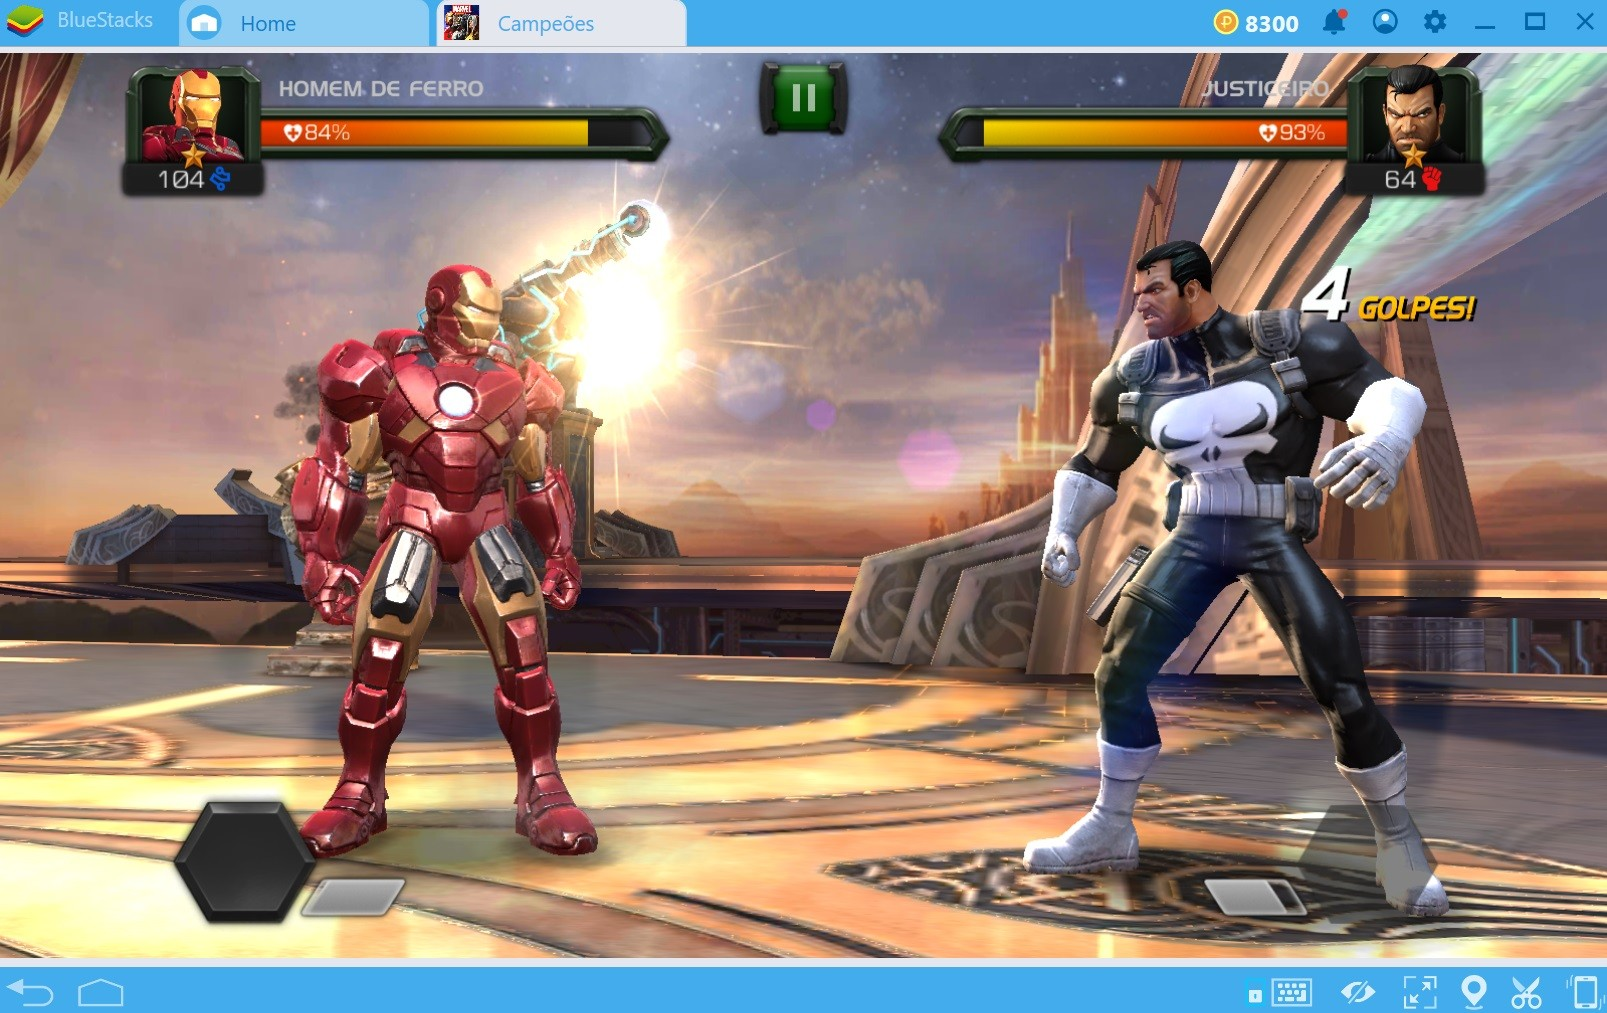 Lista de personagens em MARVEL Contest of Champions